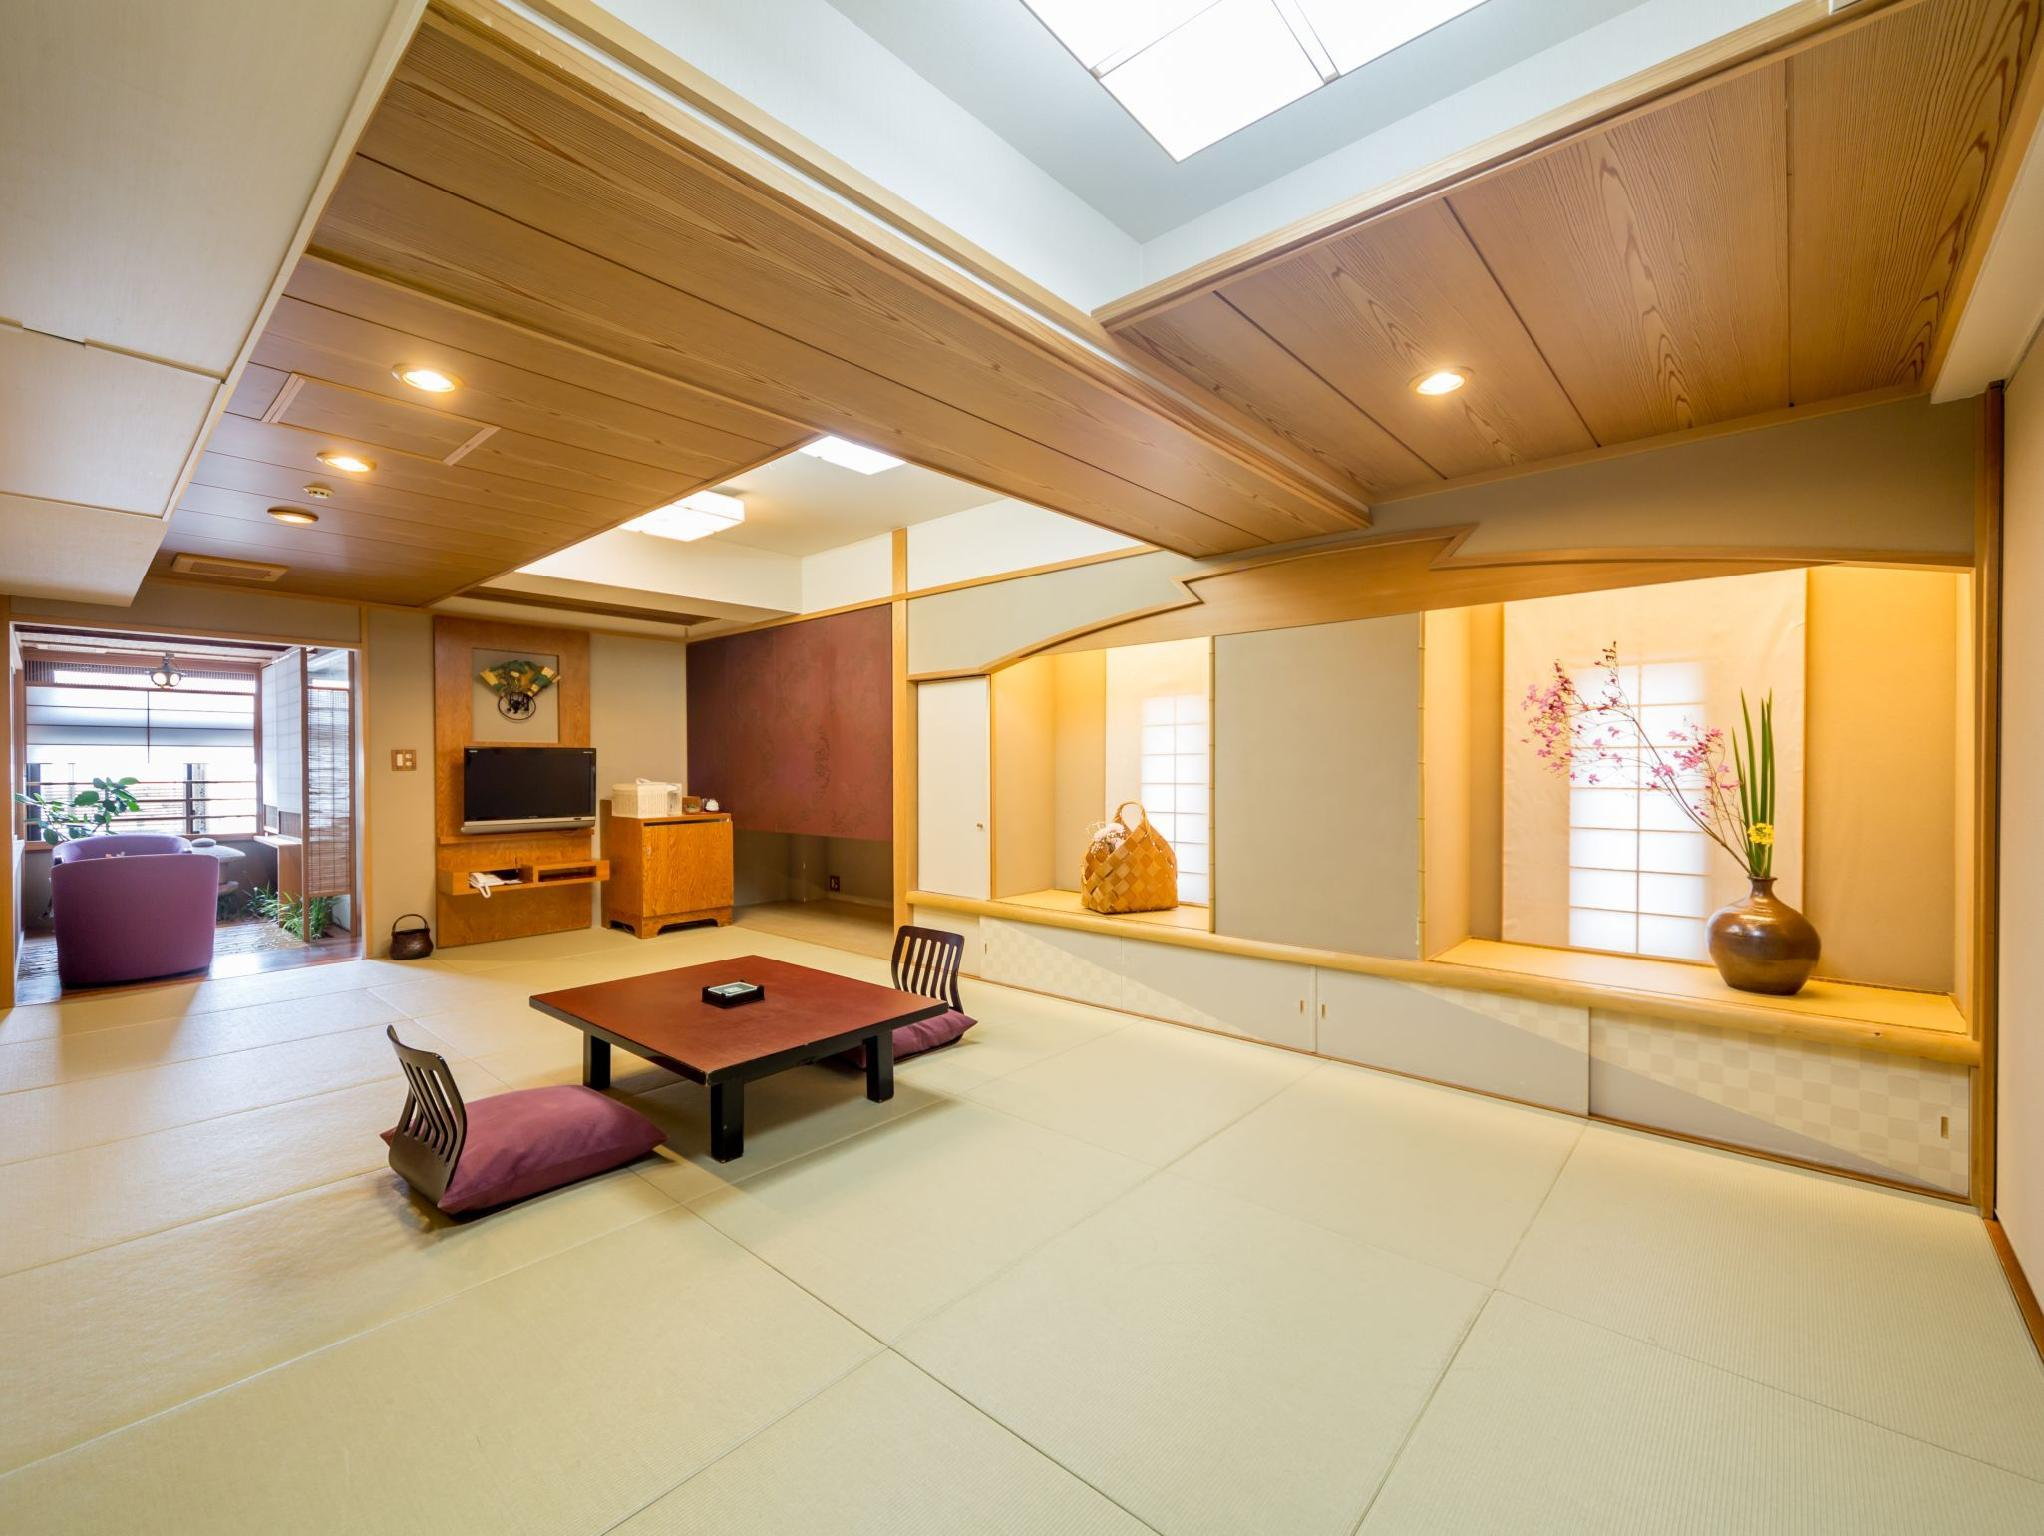 Luxury Japanese Style Large Room